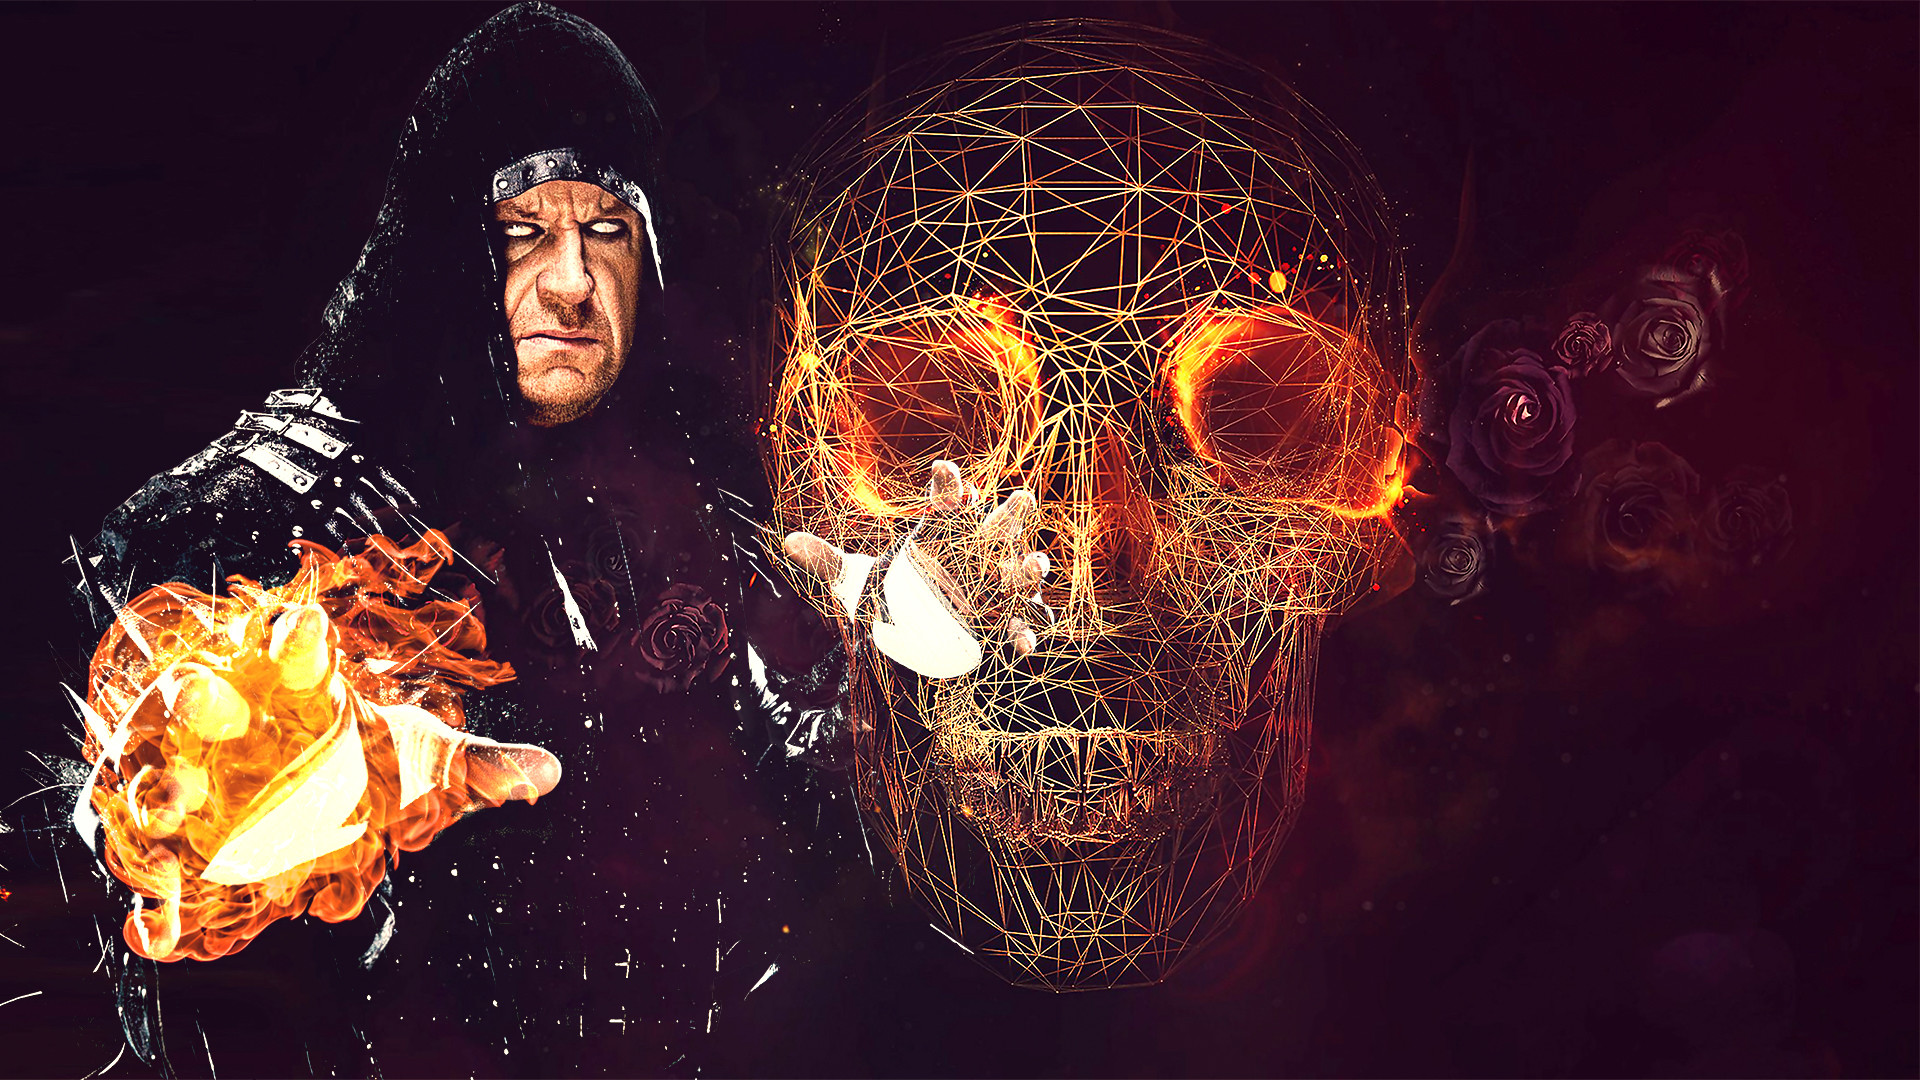 wwe superstar undertaker images